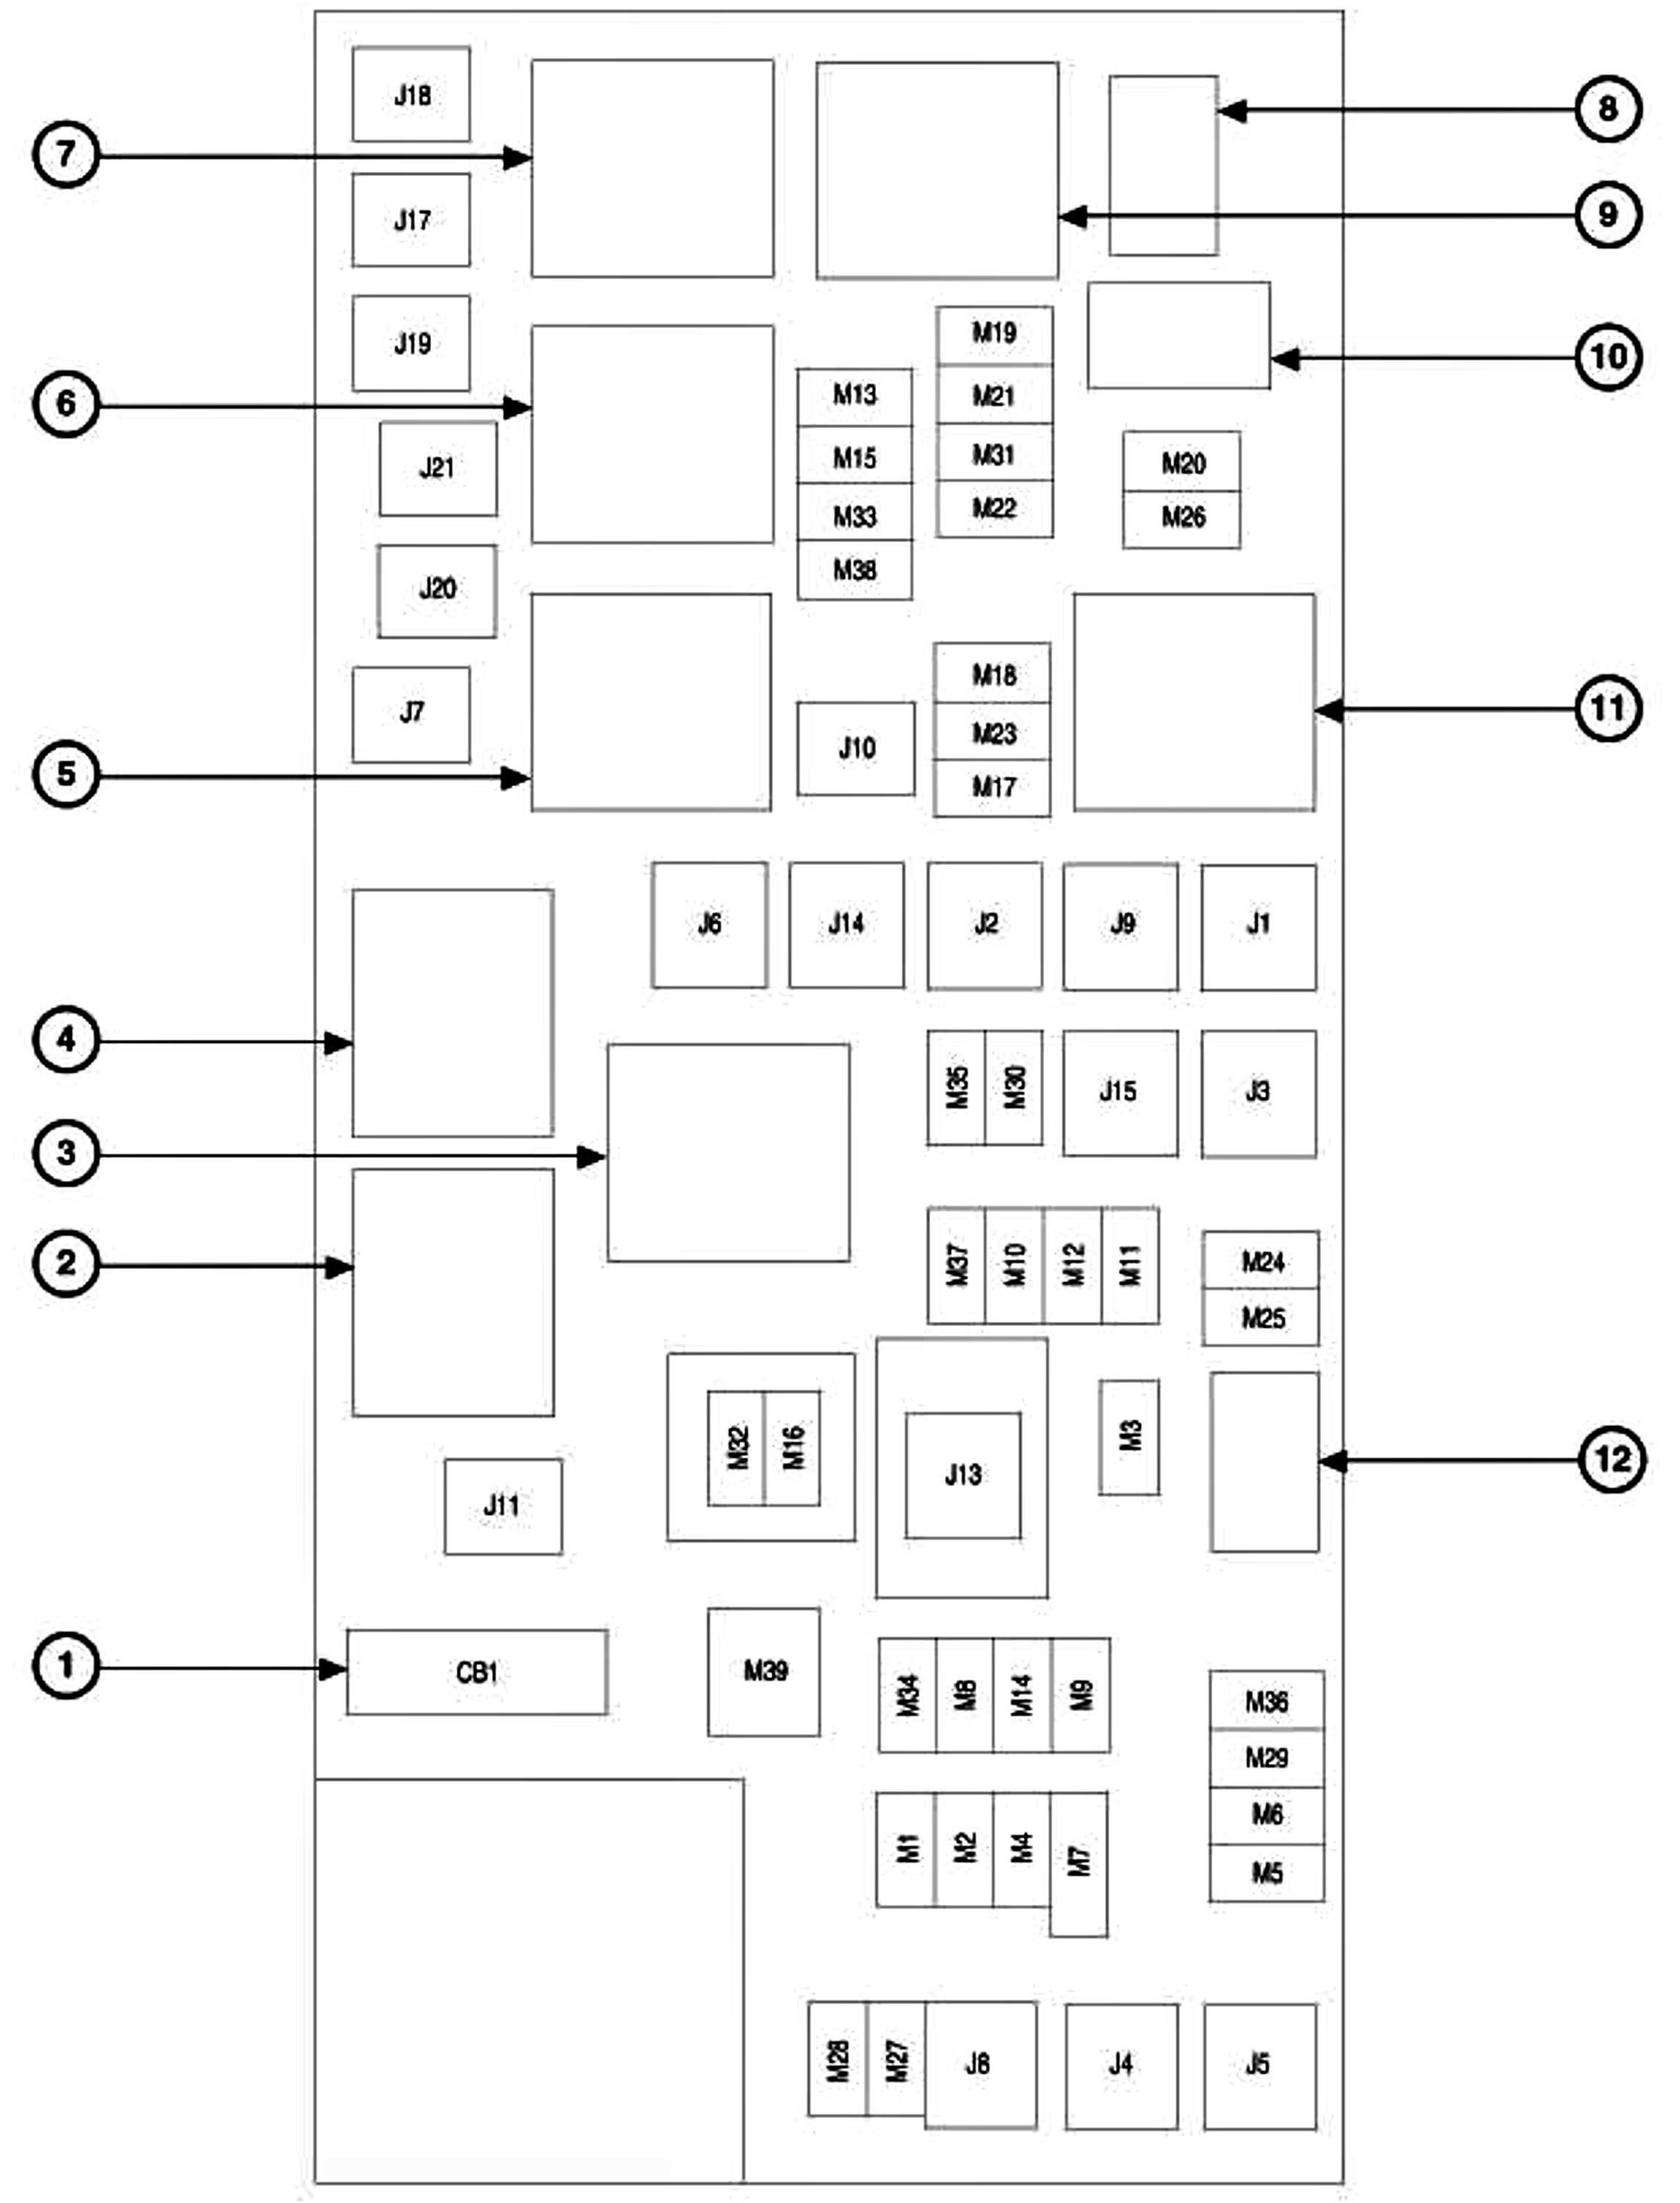 2006 jeep commander fuse box diagram jpeg http carimagescolay rh pinterest com 2006 jeep commander limited fuse box diagram 2006 jeep commander interior fuse box diagram